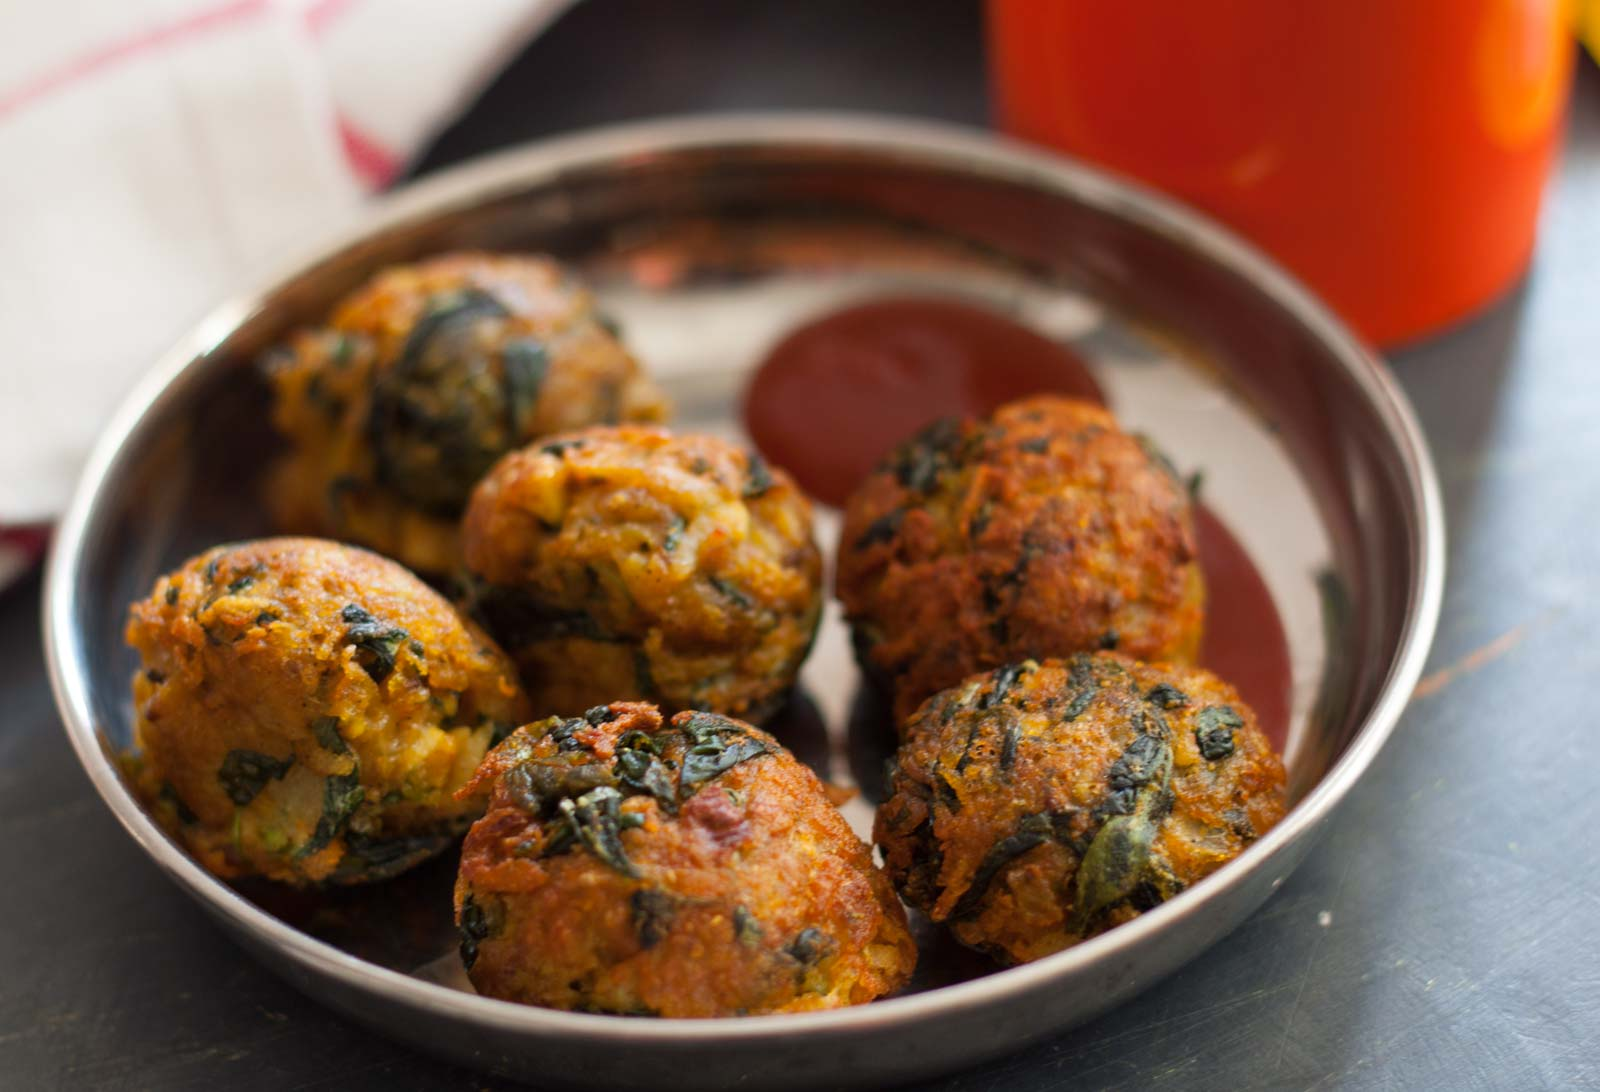 Karnataka Style Alugadde and Mentye Pakoda Recipe Potato and fenugreek leaves fritters 2